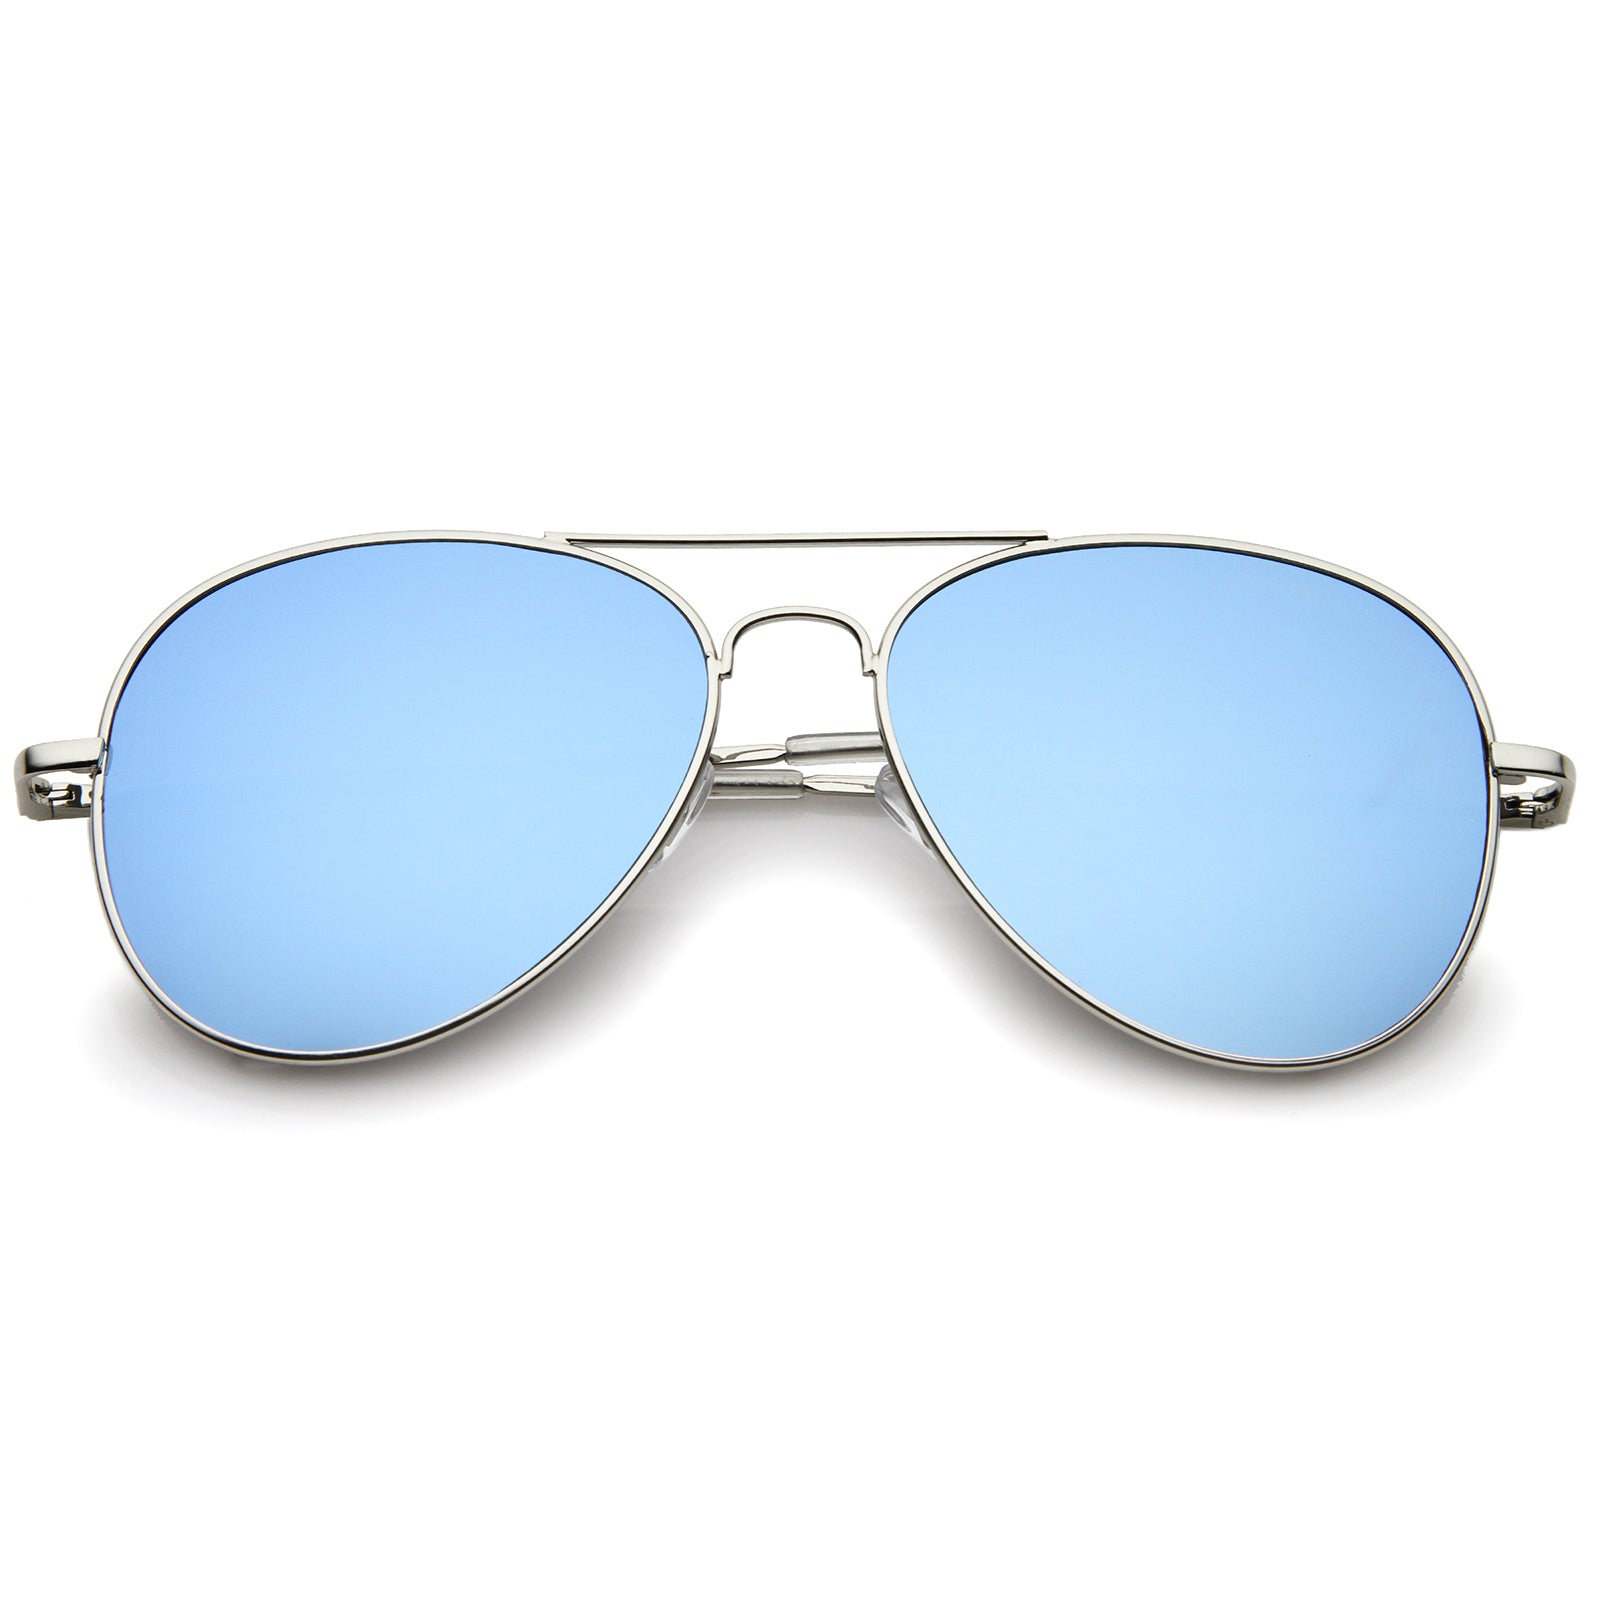 Small Full Metal Color Mirror Teardrop Flat Lens Aviator Sunglasses 56mm - sunglass.la - 6